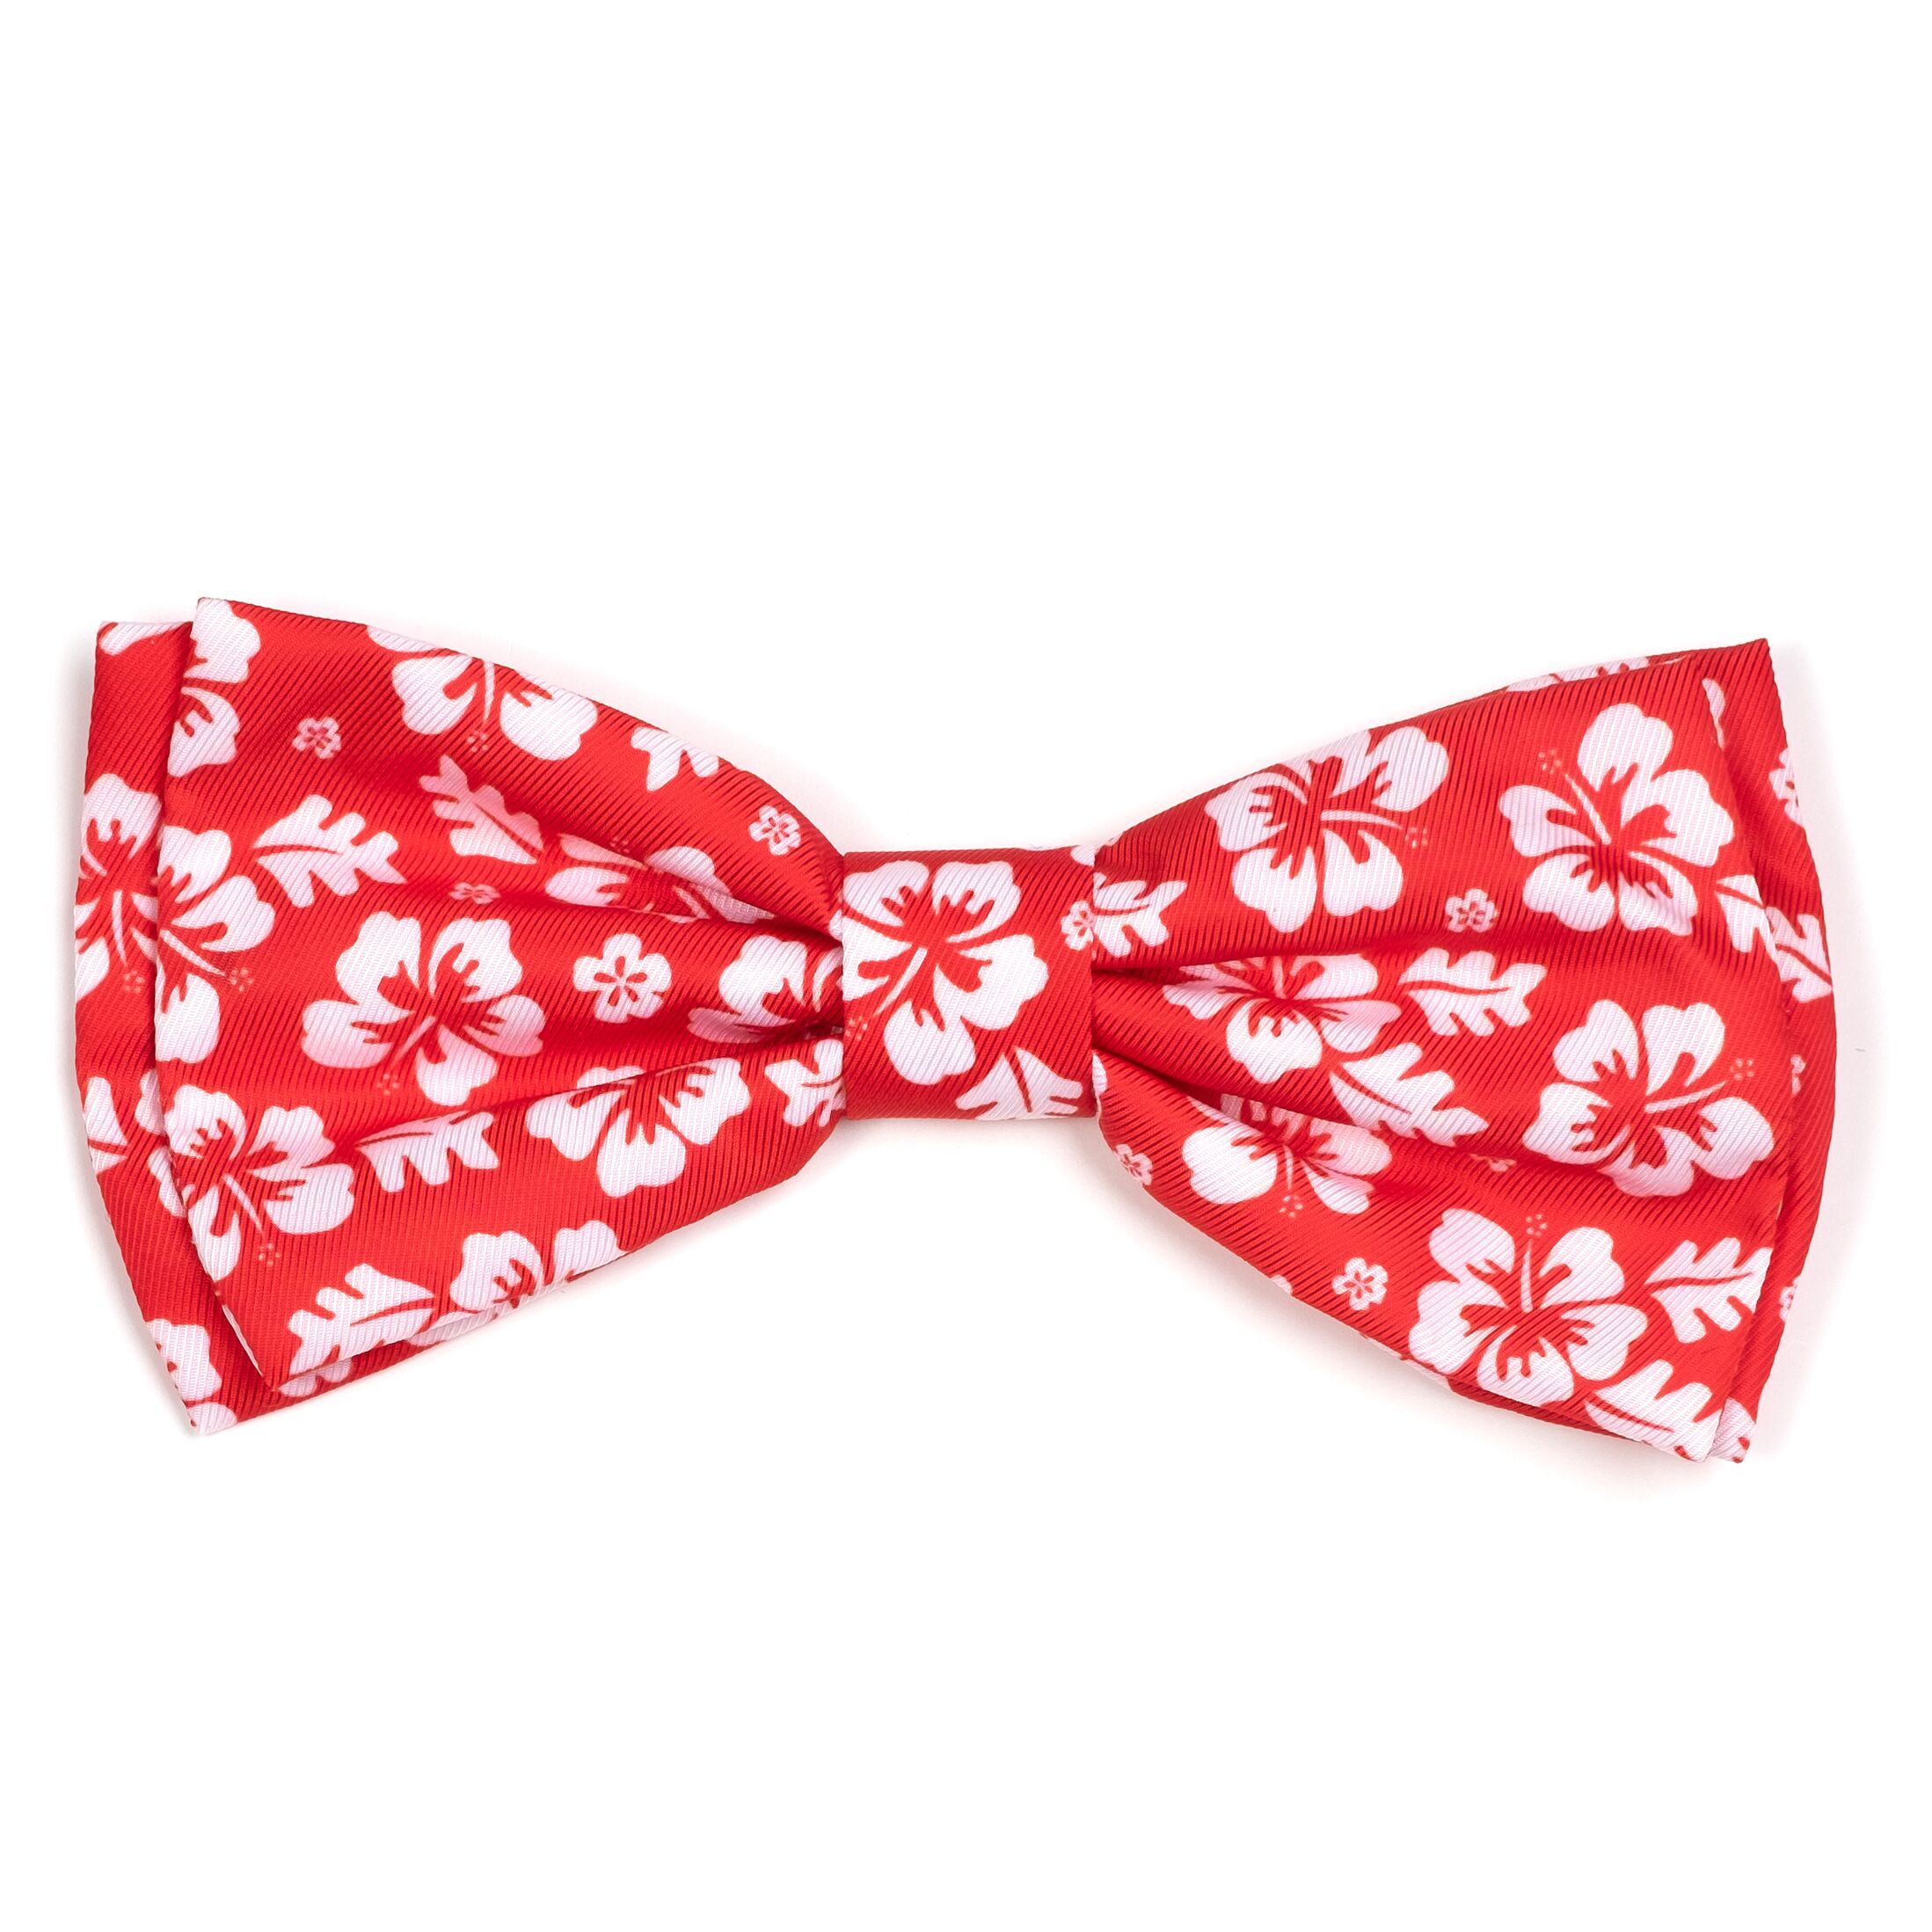 The Worthy Dog Bow Tie, Aloha Coral, Small